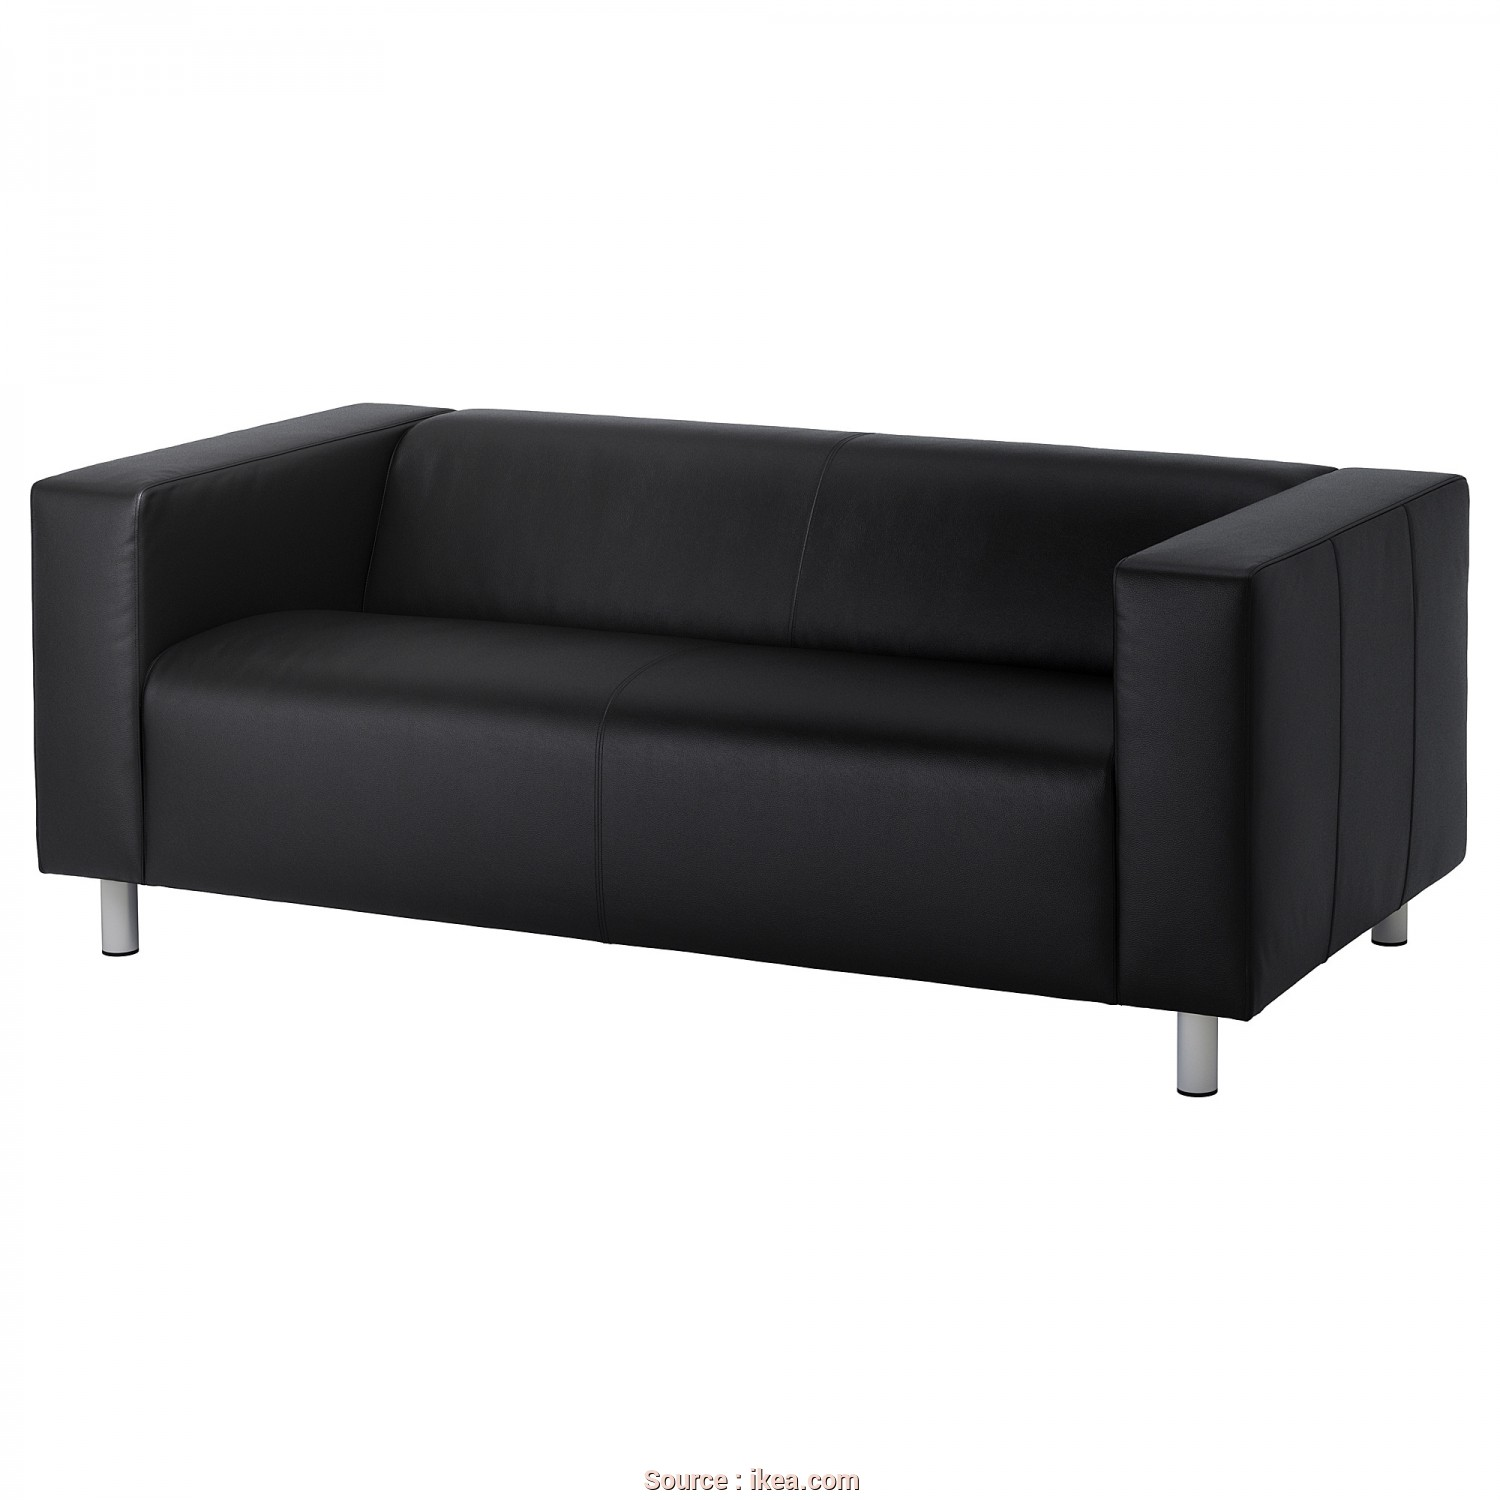 Ikea Klippan, Leather Sofa, Deale IKEA KLIPPAN 2-Seat Sofa 10 Year Guarantee. Read About, Terms In The